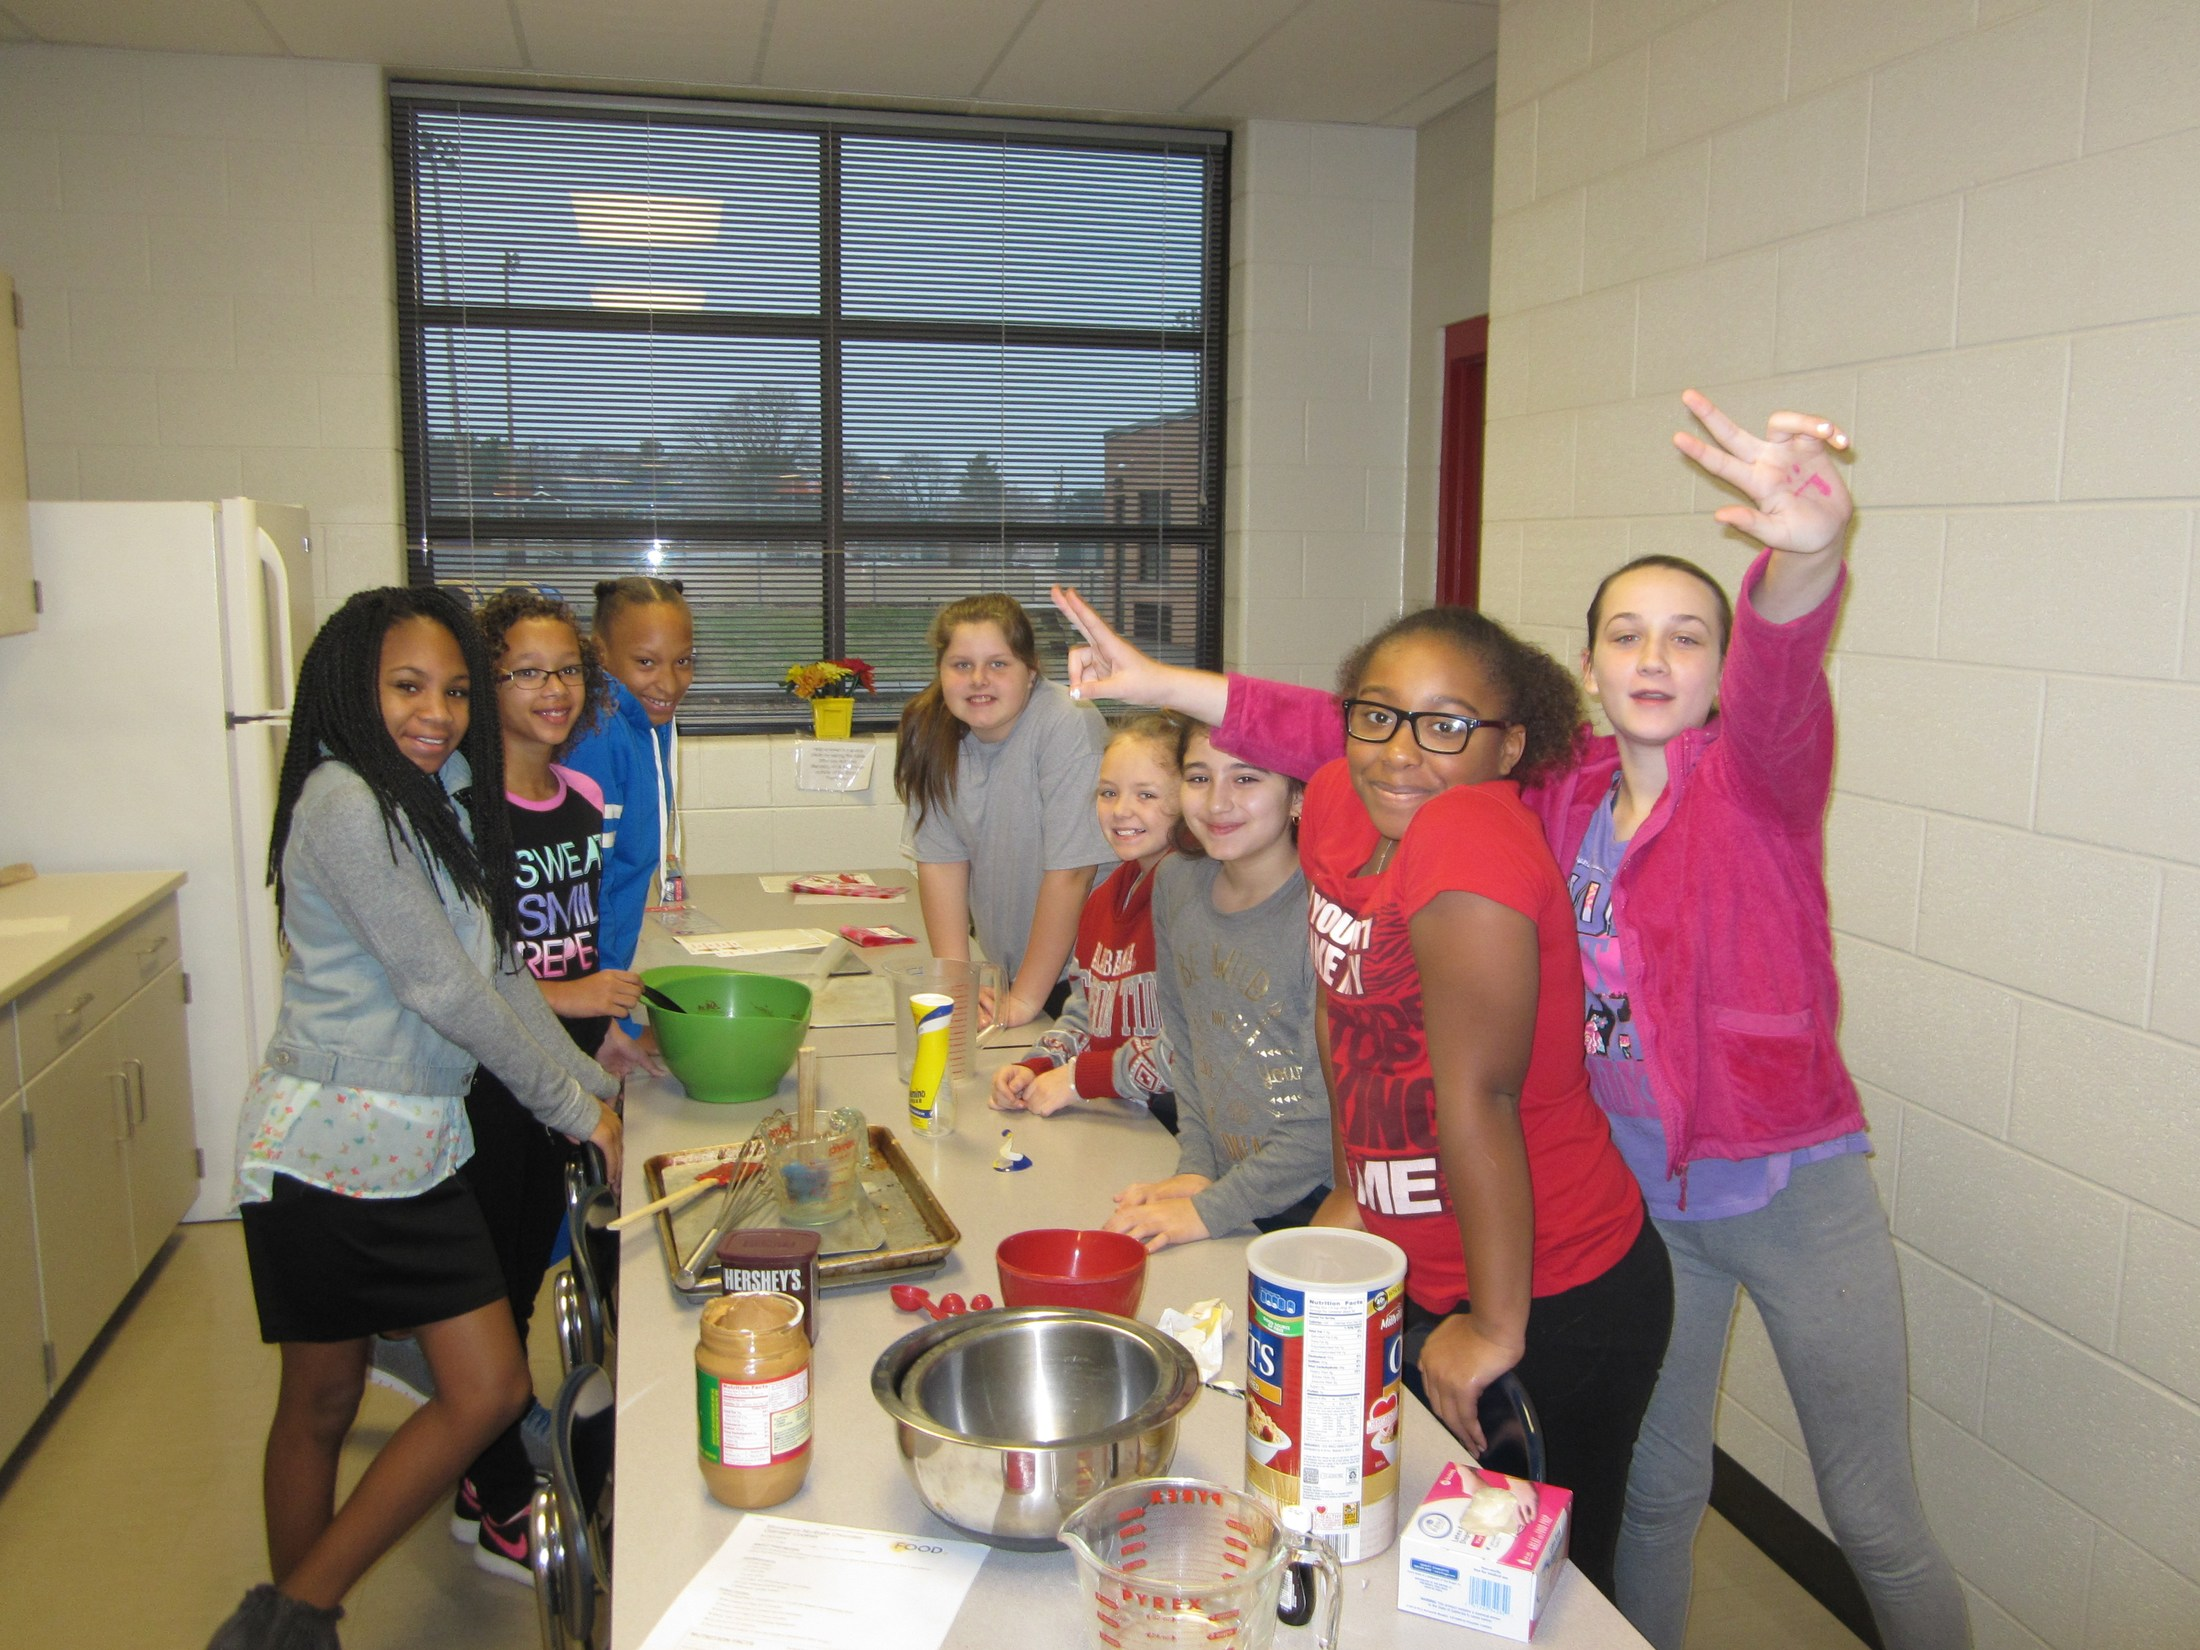 Making cookies for the Smyrna Fire Station #1